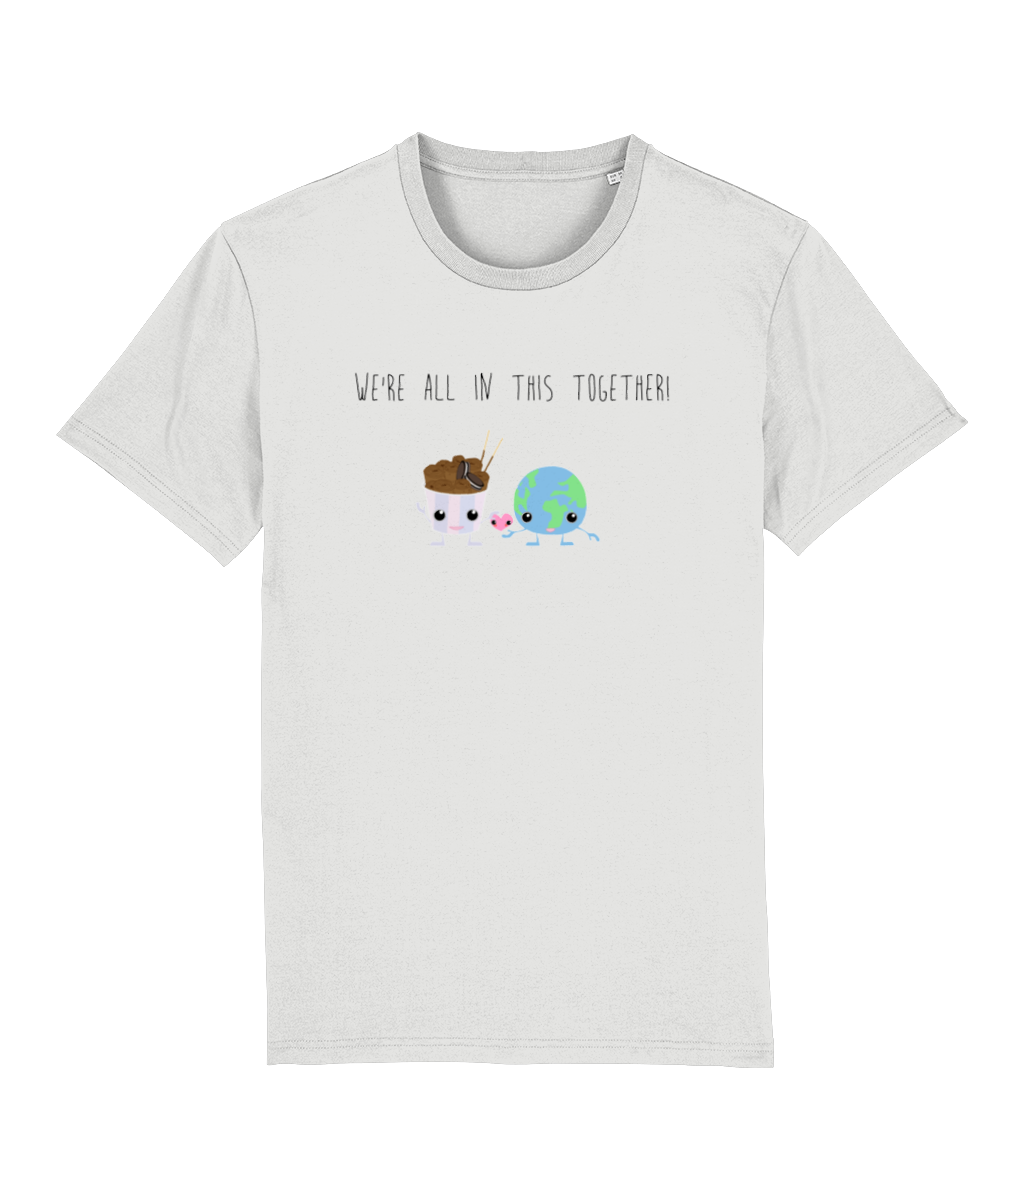 Unisex in this together t shirt